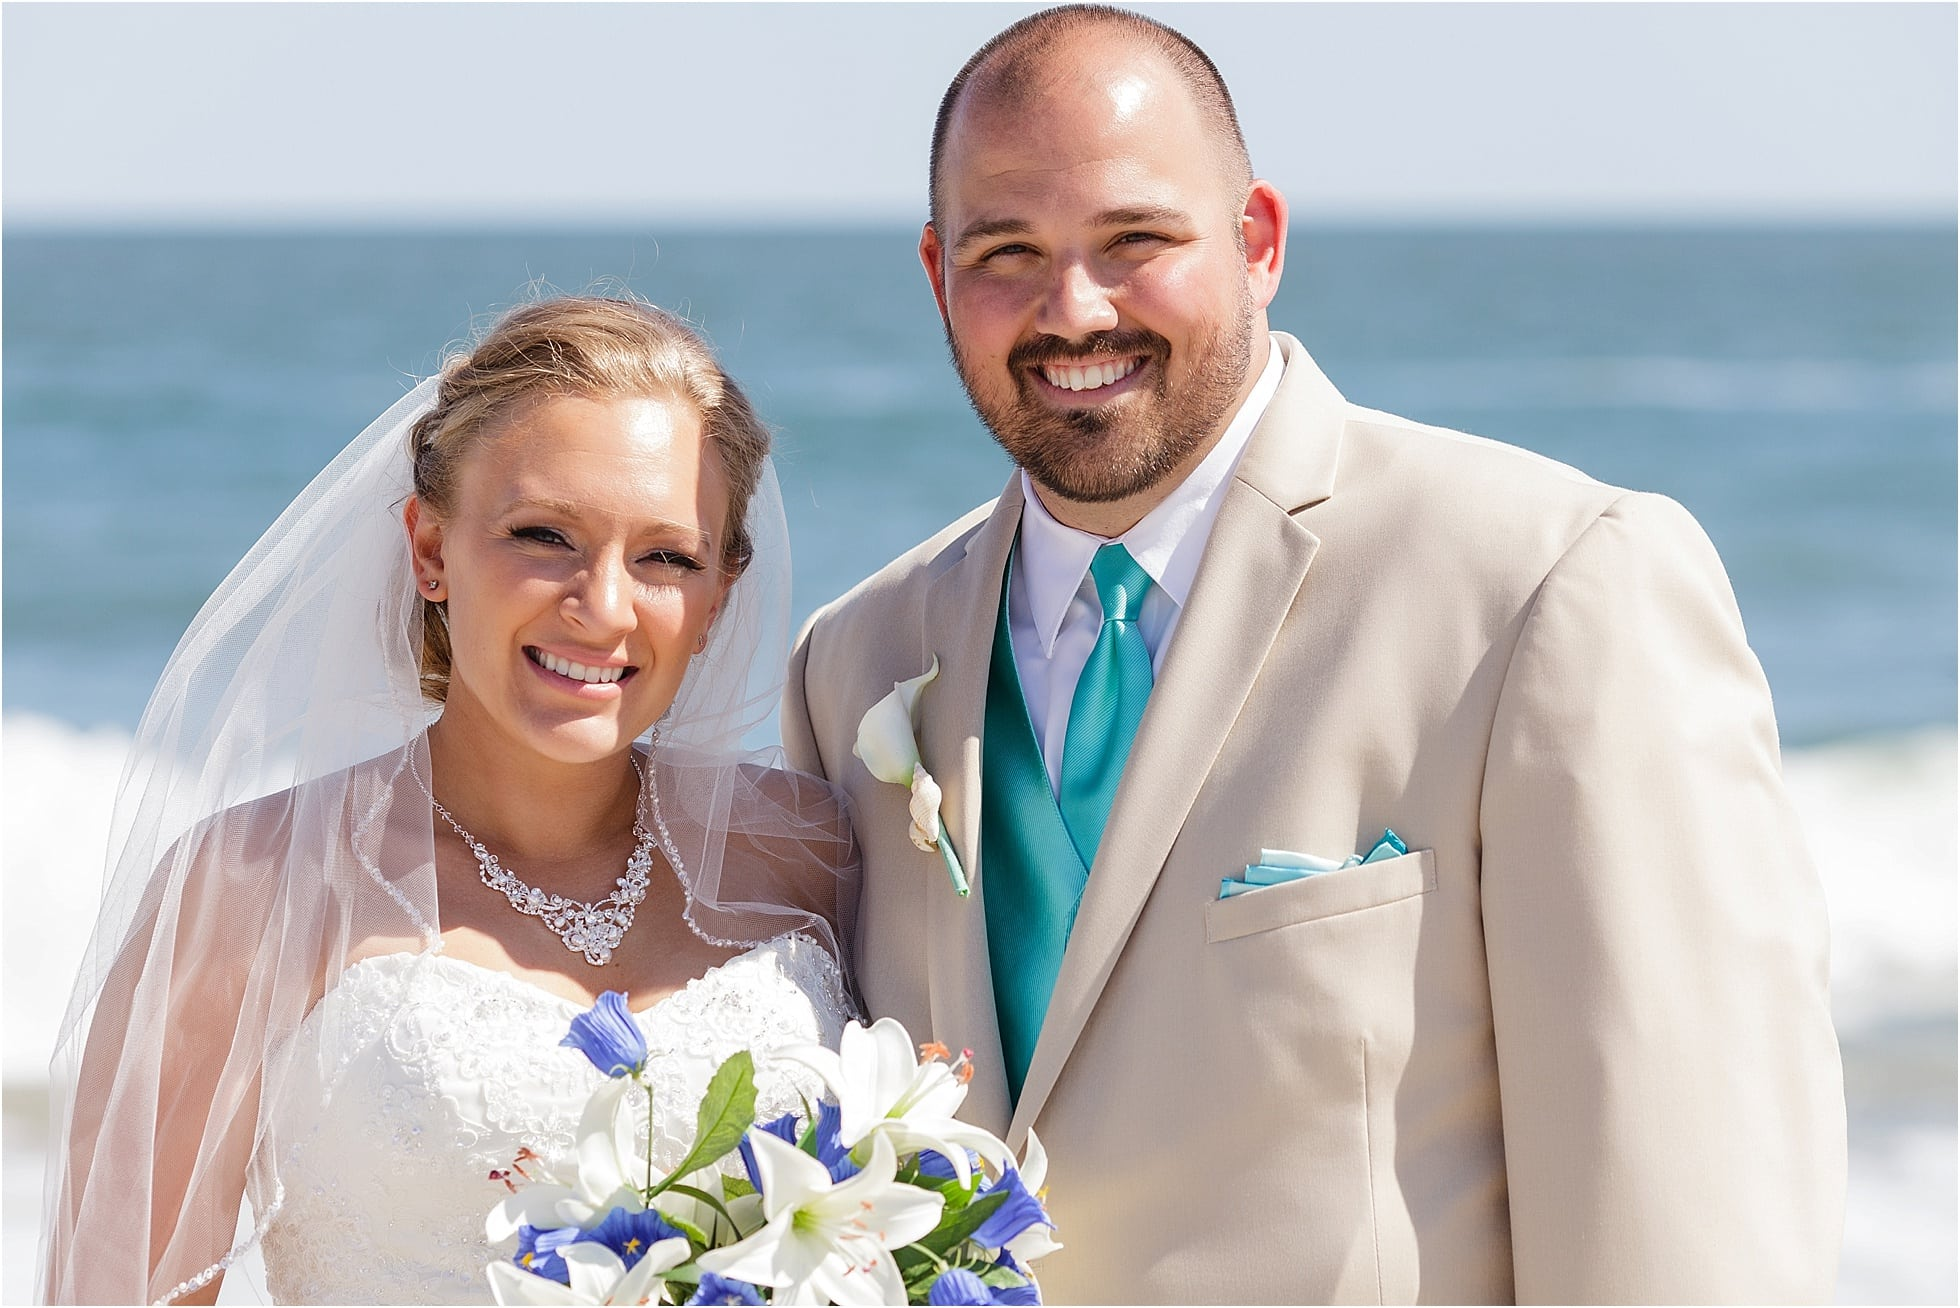 Cape May Beach Wedding photos - South Jersey Weddings